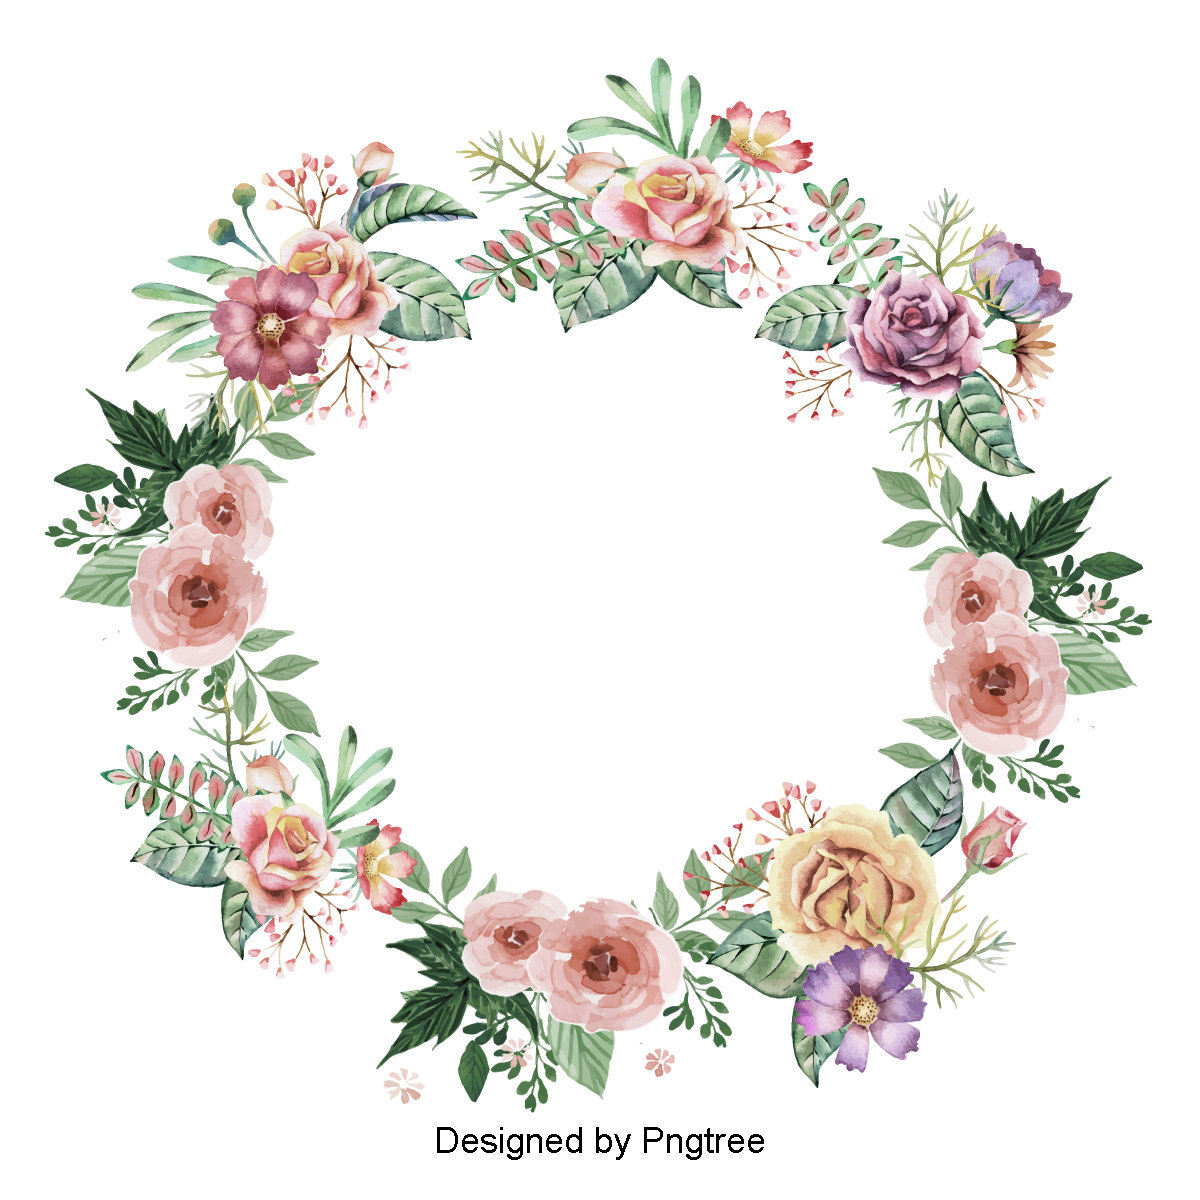 Vector flower design png. Wreath images download resources